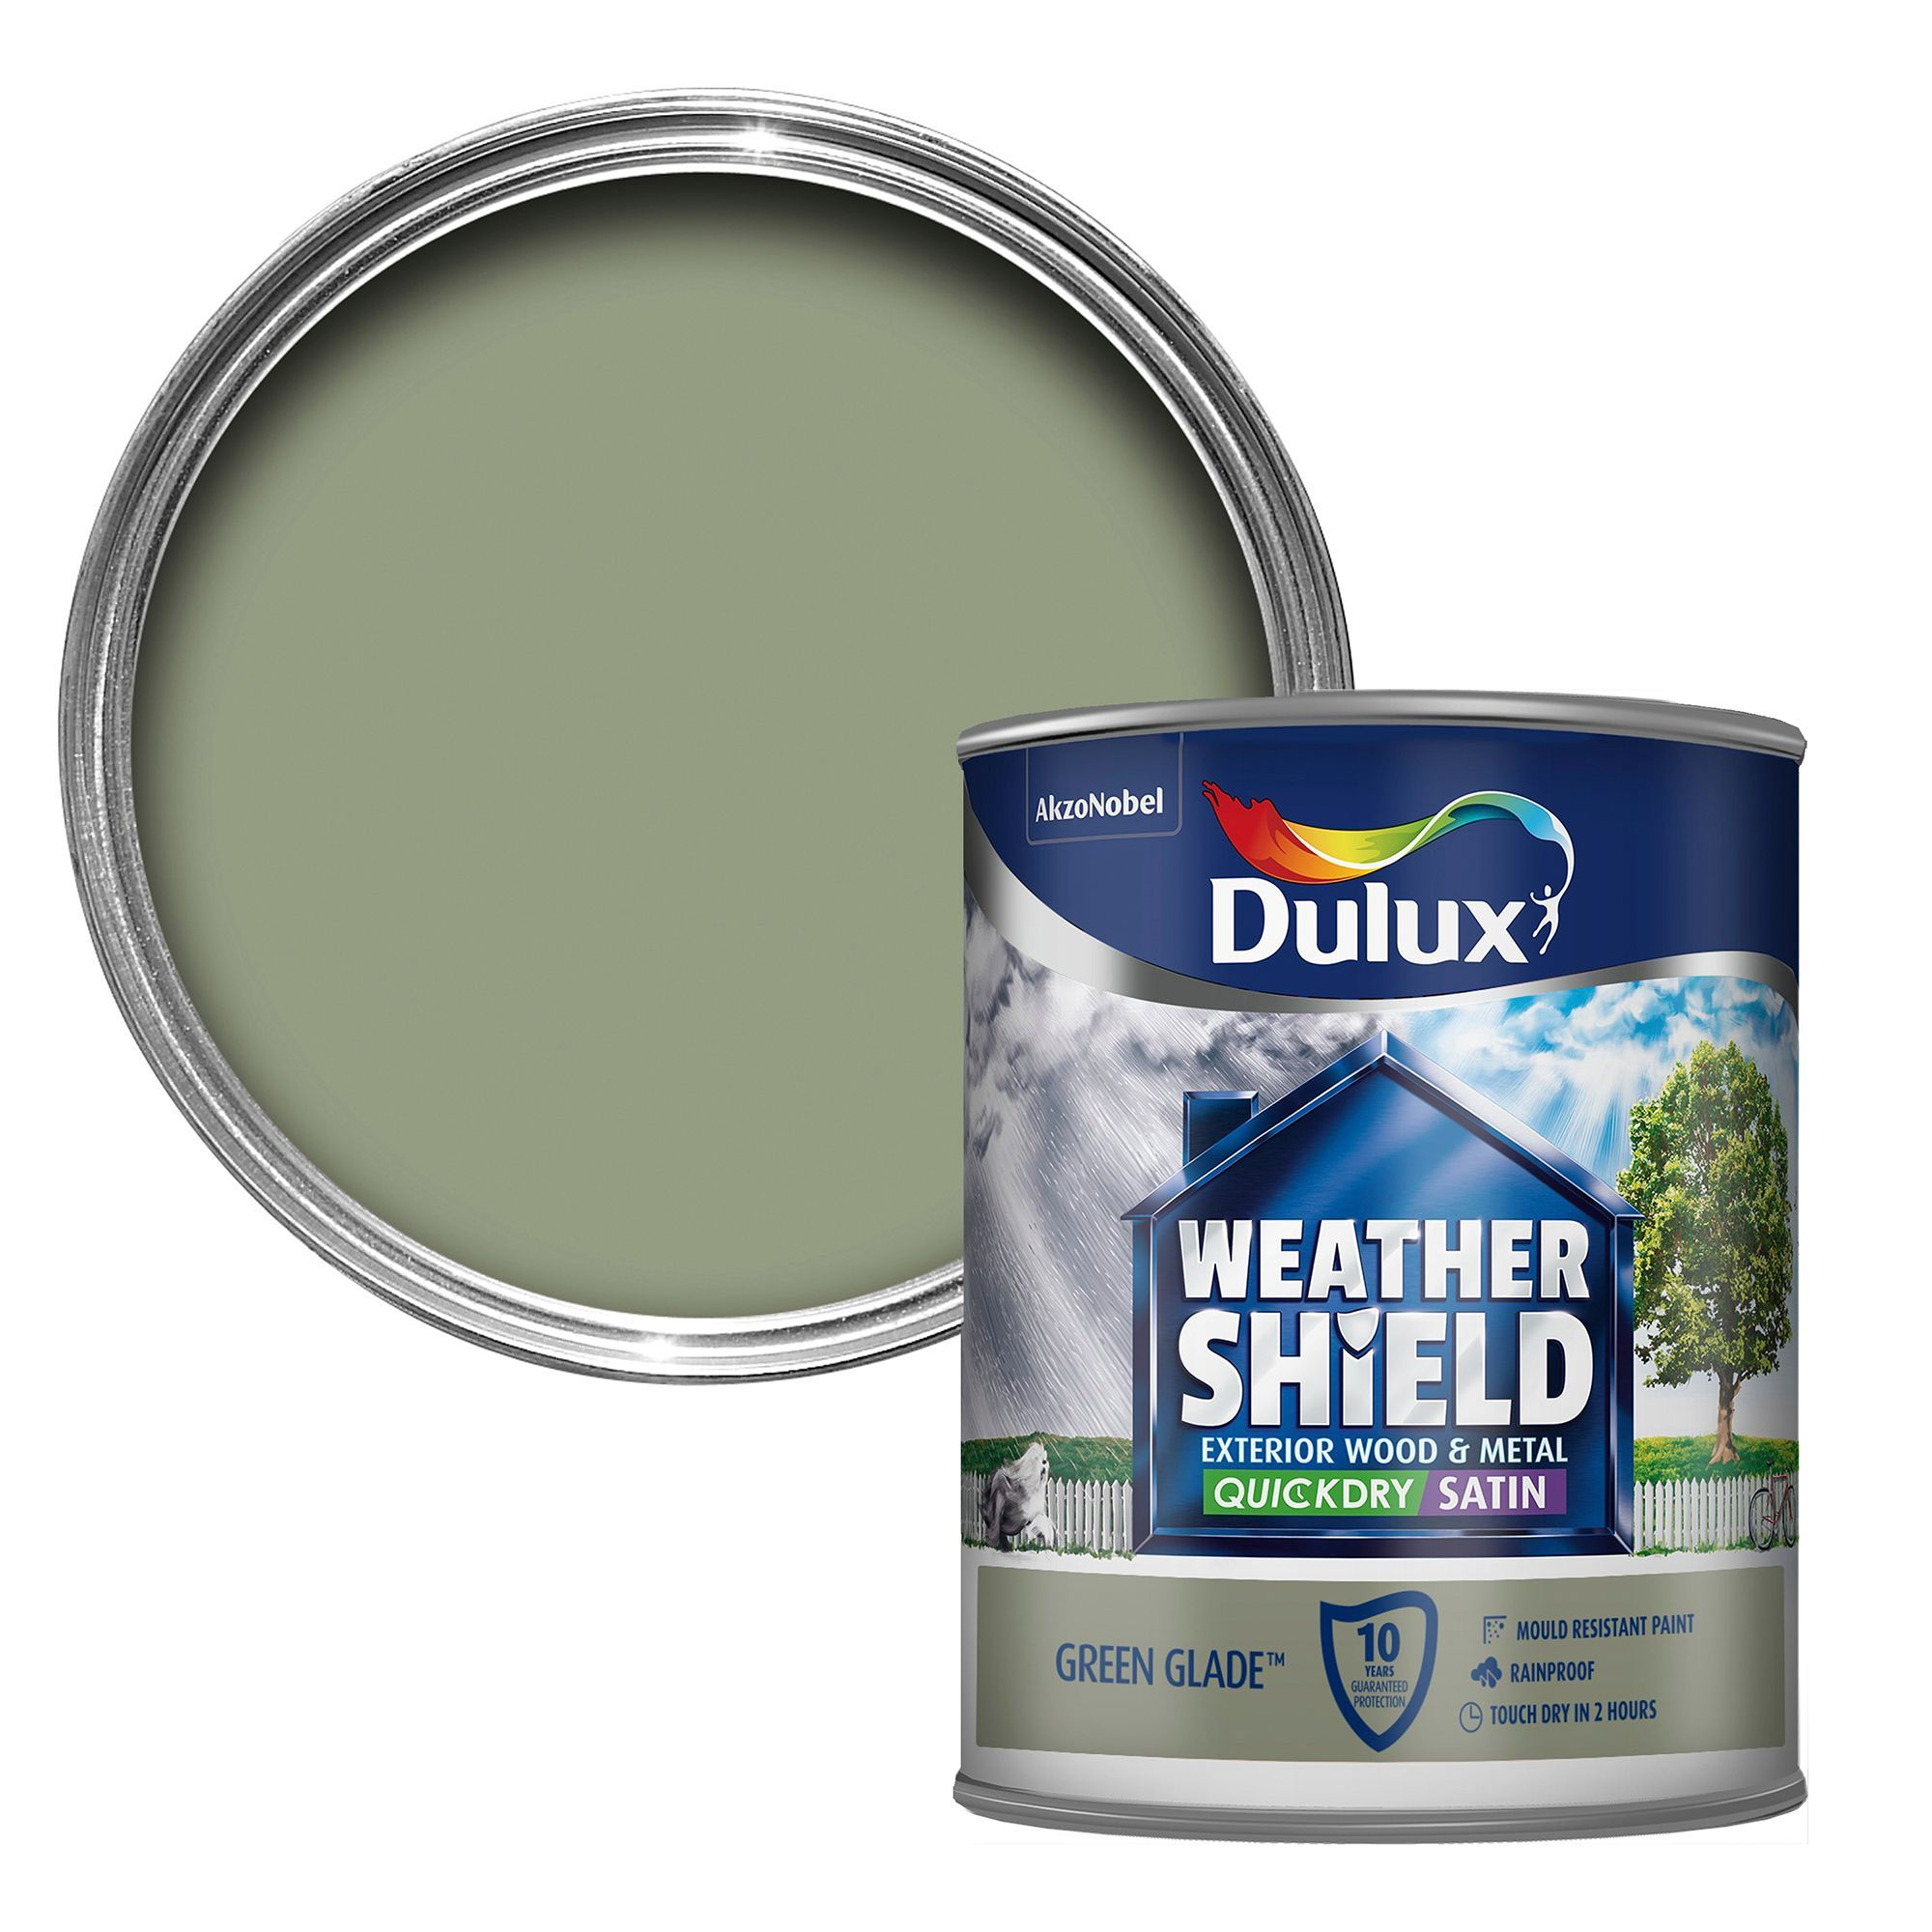 Dulux Weathershield Exterior Glade Green Satin Wood Metal Paint 750ml Departments Diy At